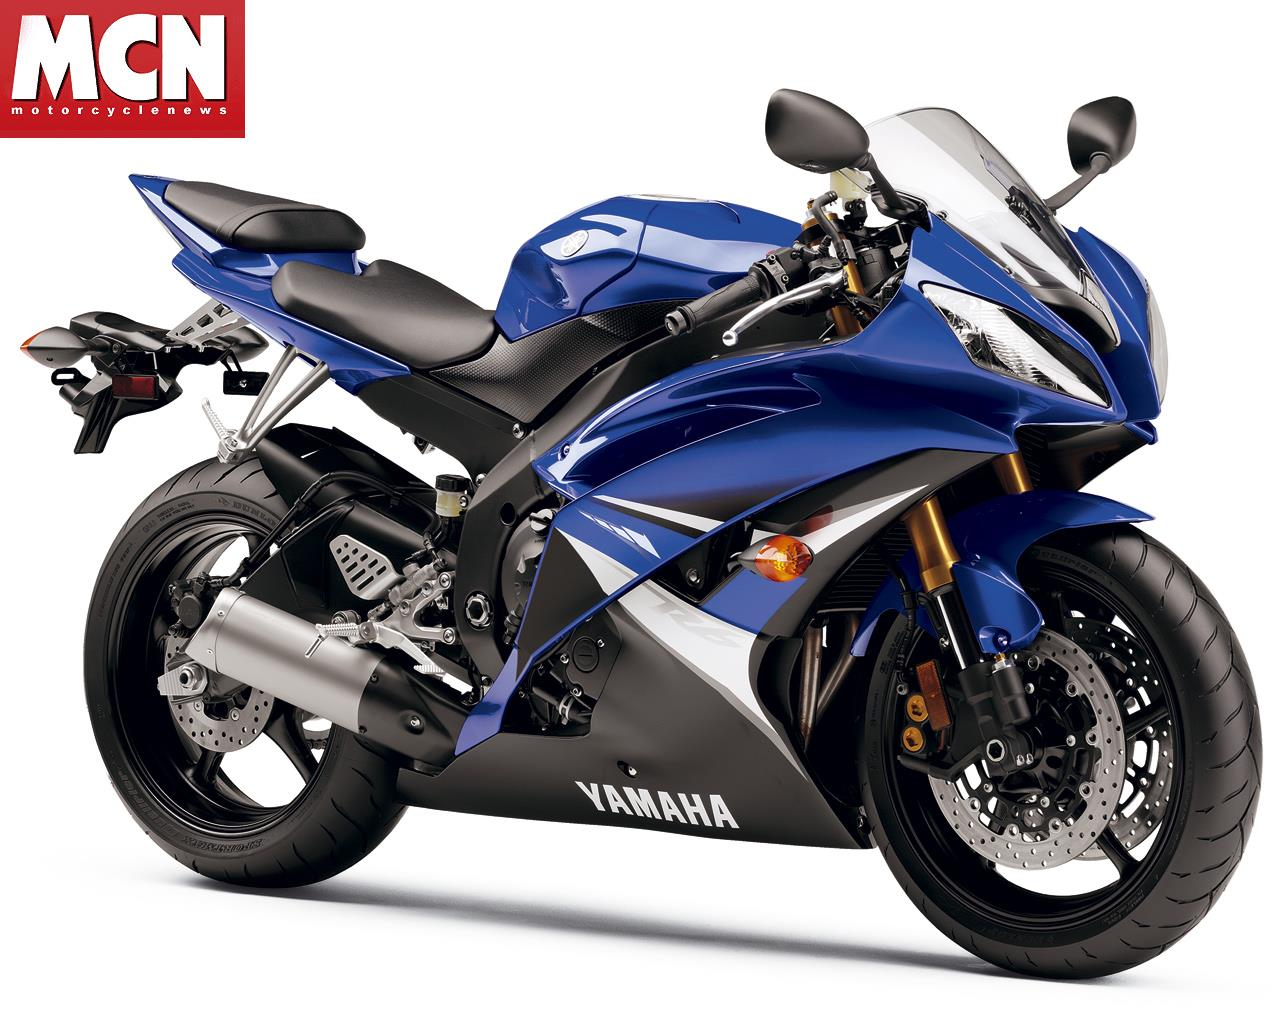 American Colour Options For The 2008 Yamaha R6 Motorcycle